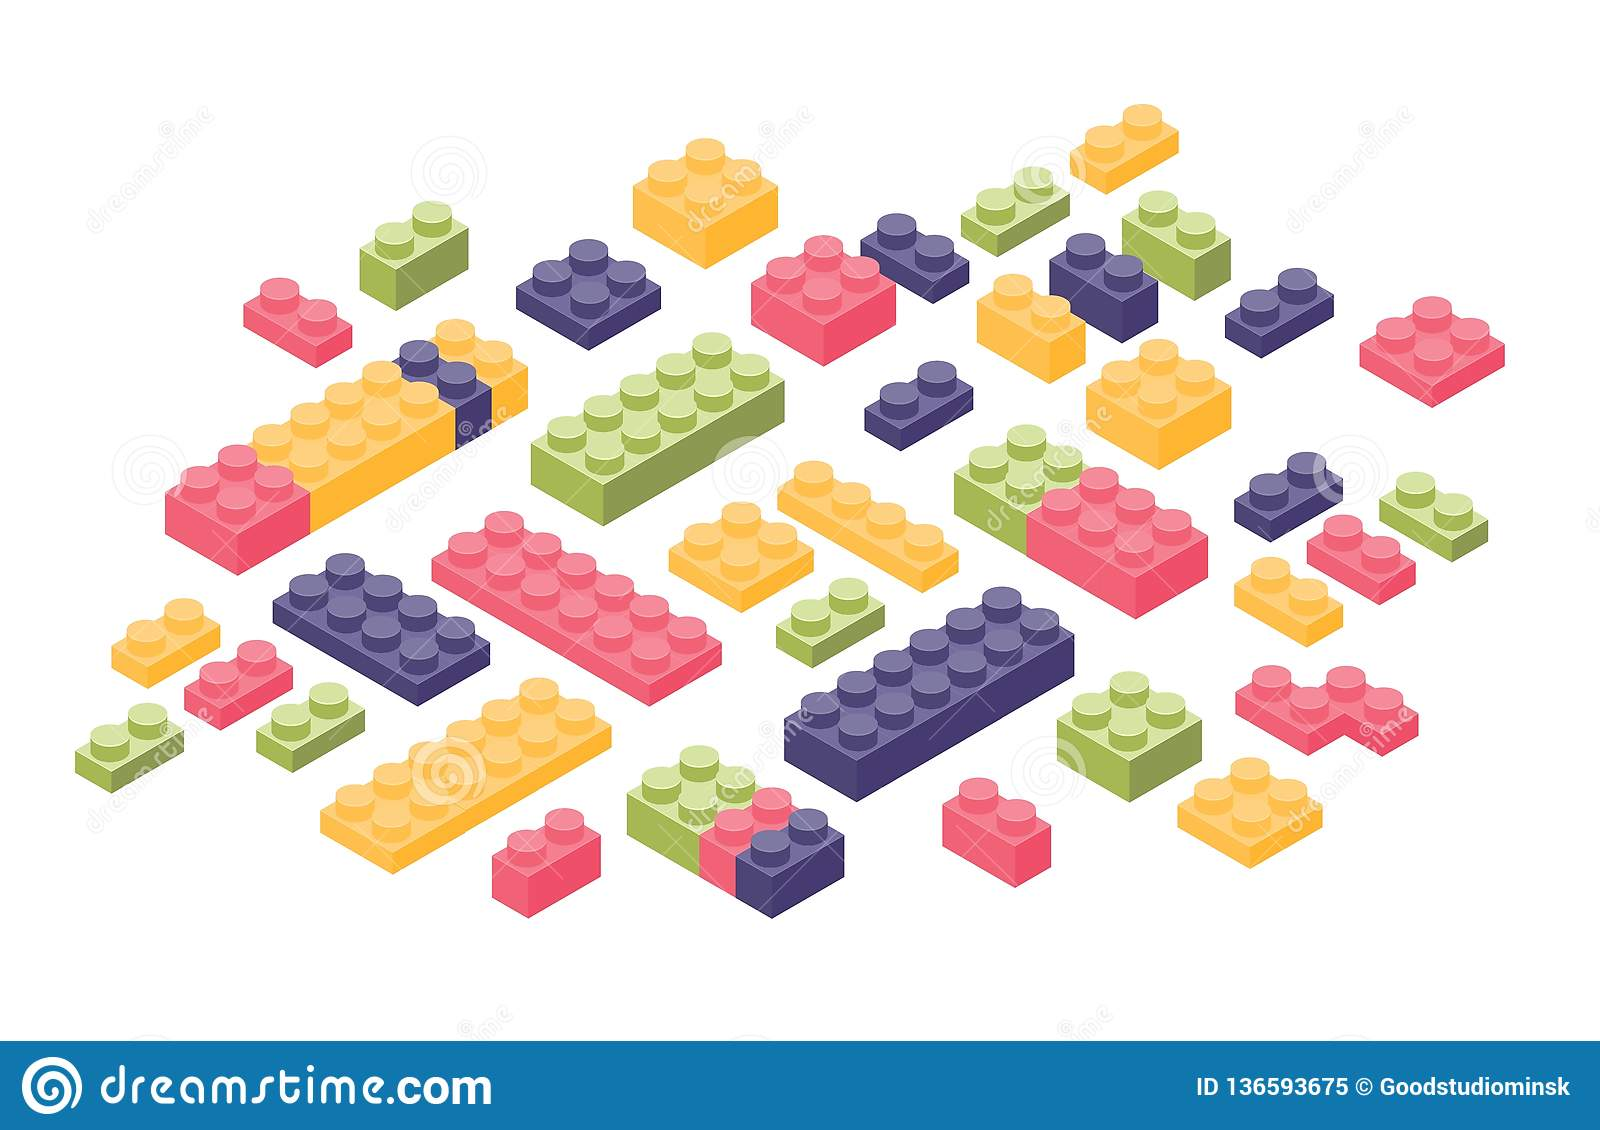 Bundle of isometric colorful constructor details or parts isolated on white background. Plastic interlocking toy bricks